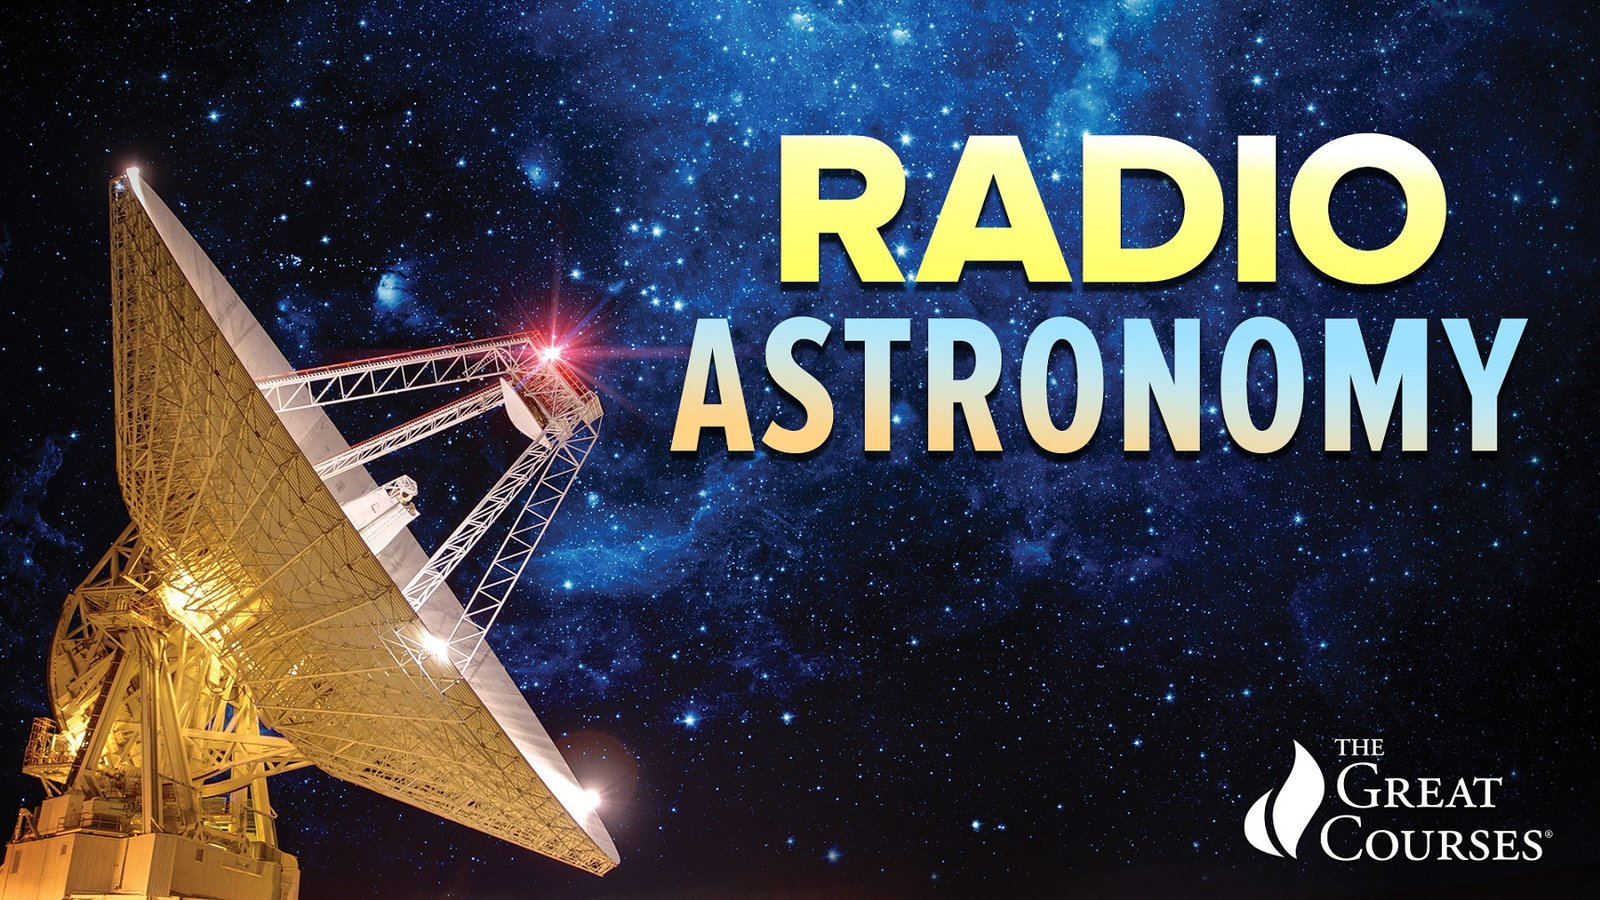 Radio Astronomy - Observing the Invisible Universe